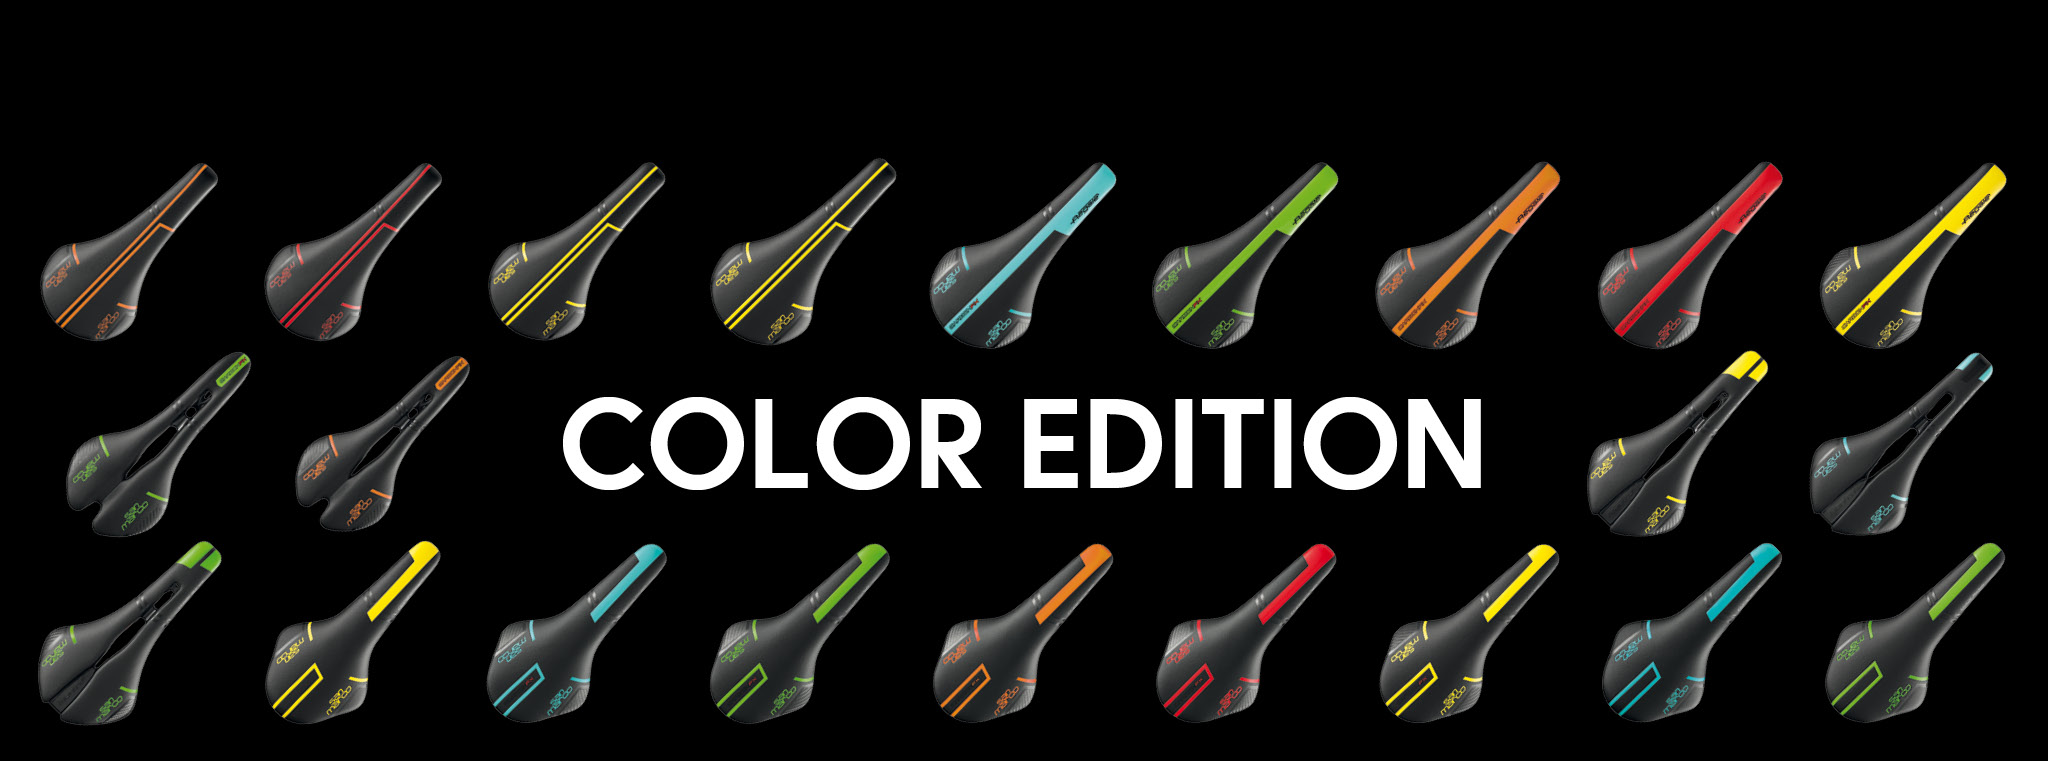 NEW COLLECTION SELLE SAN MARCO COLOR